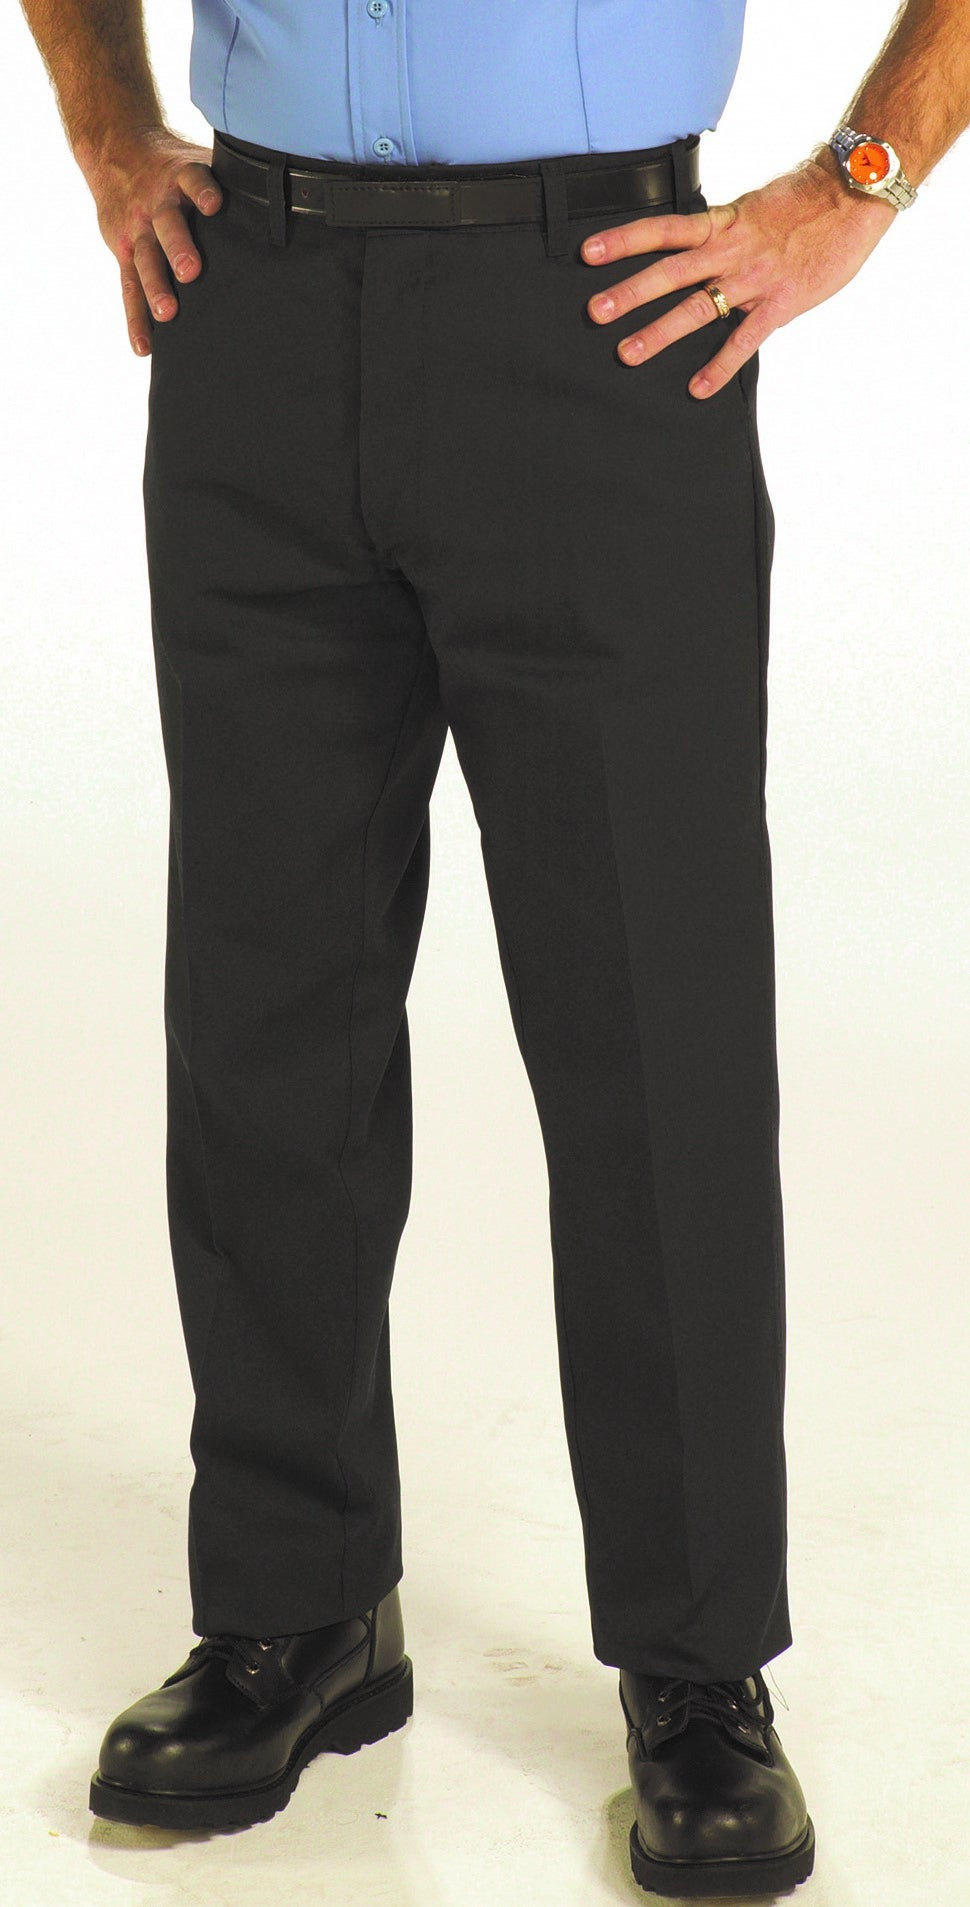 Image of Topps Public Safety Pants